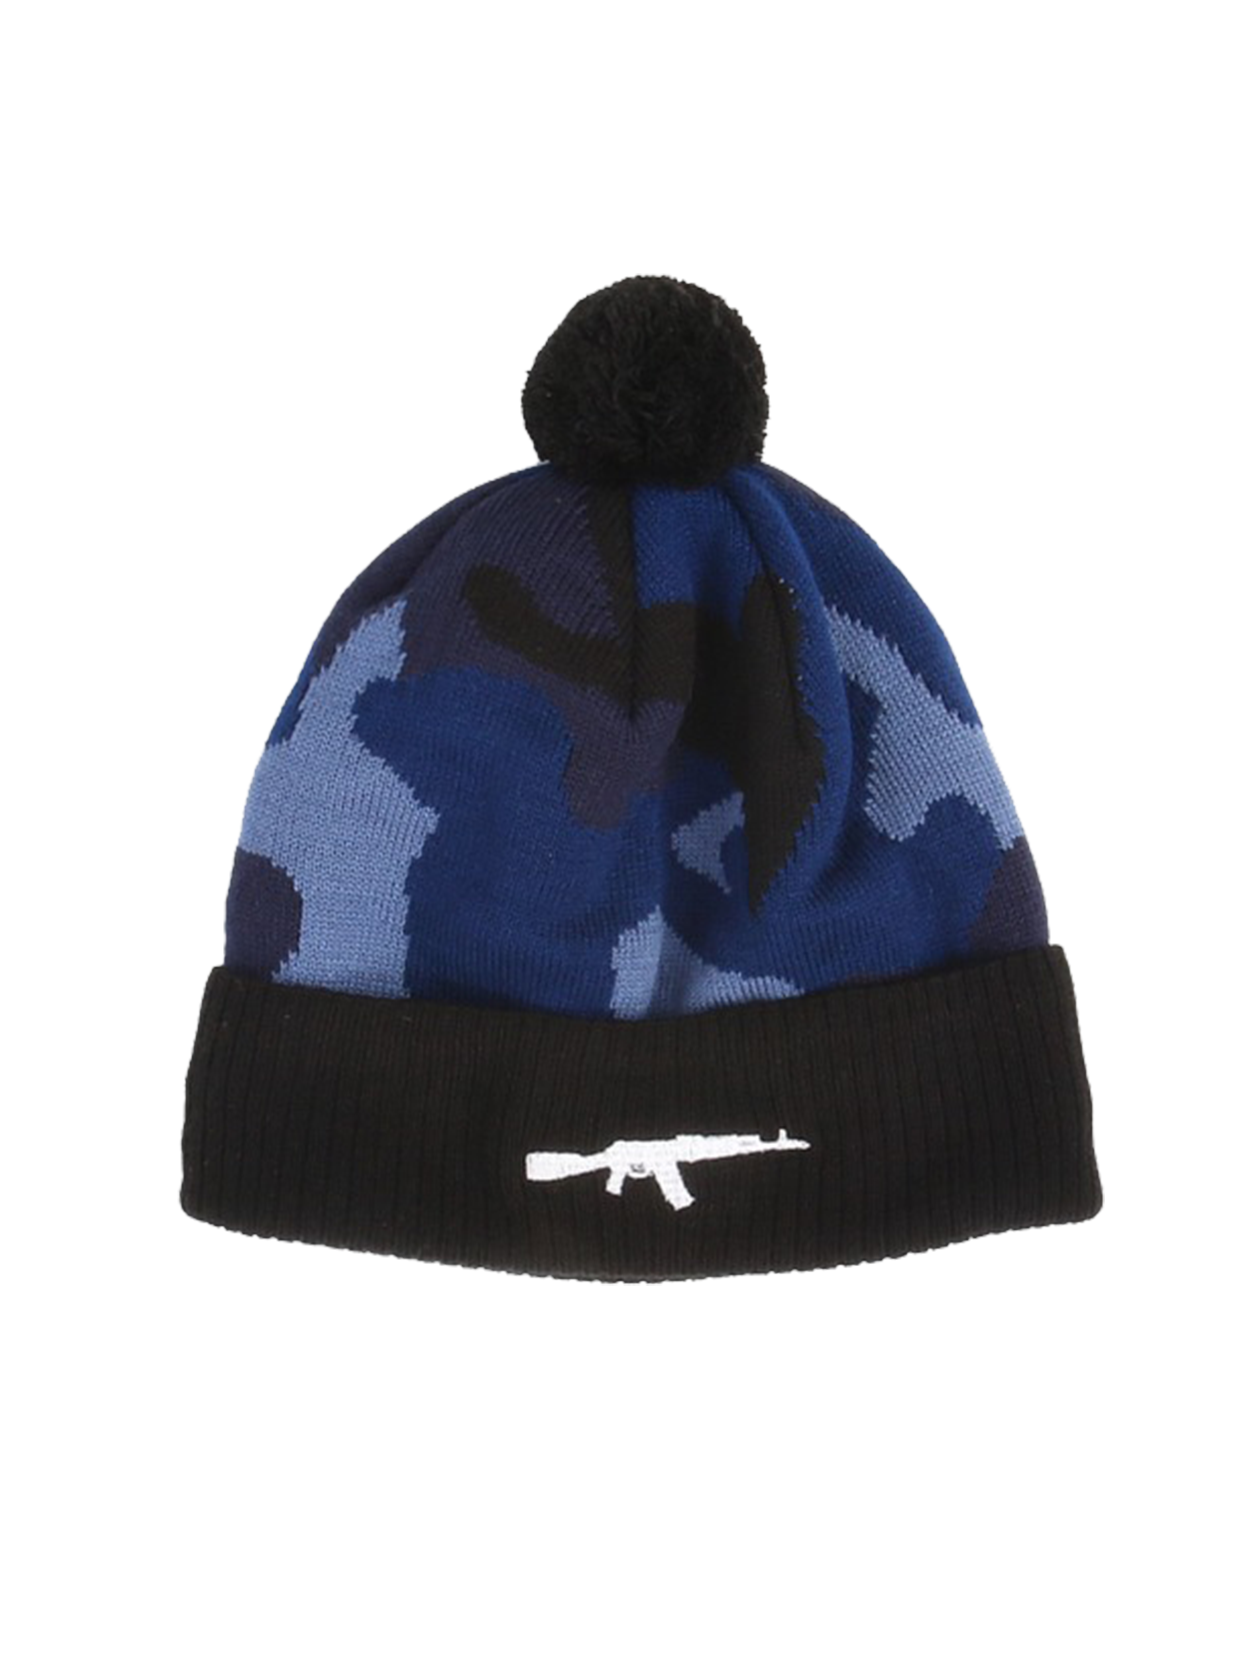 Unisex hat Blue Camo Rifle